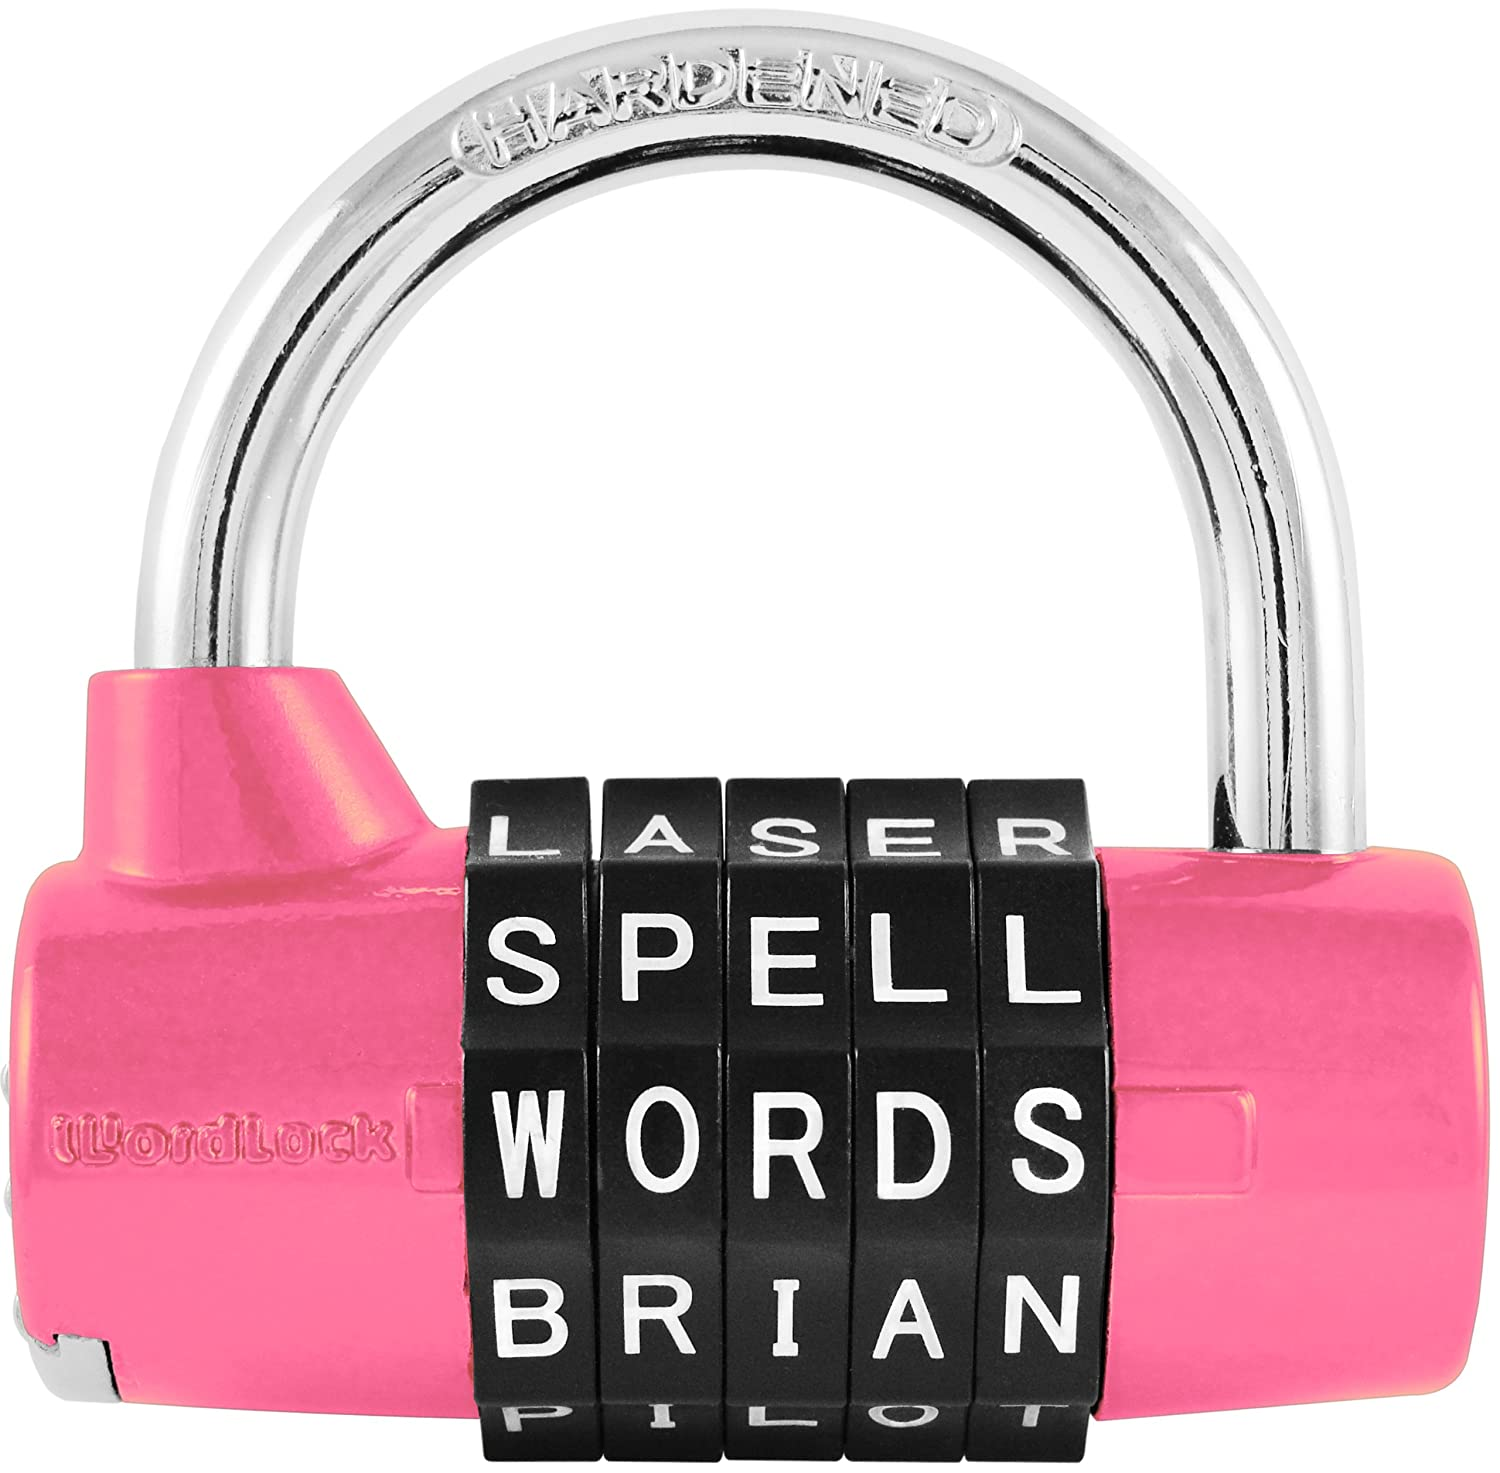 A lock that spells a word instead of using numbers!